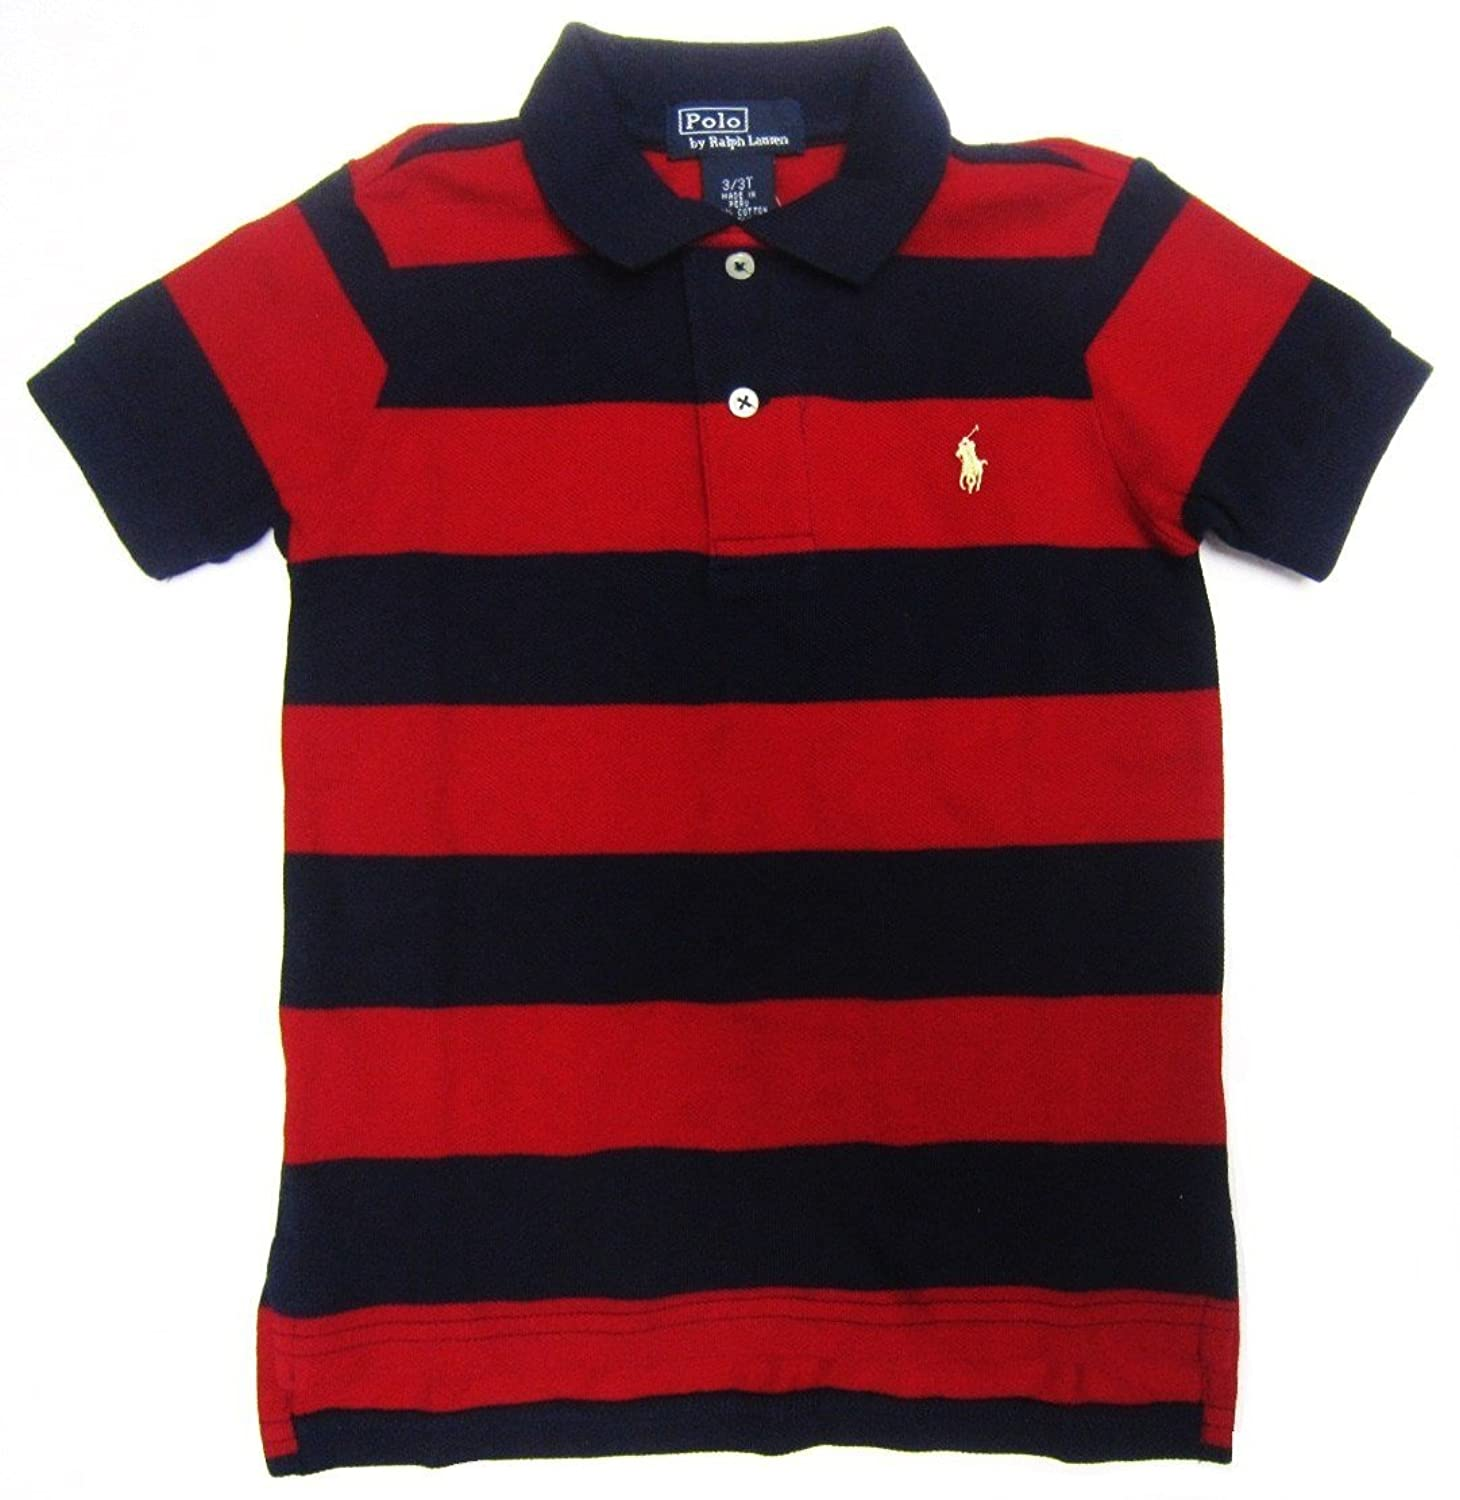 Ralph lauren custom leisure breathable pink navy stripe polo for Personalized polo shirts for toddlers